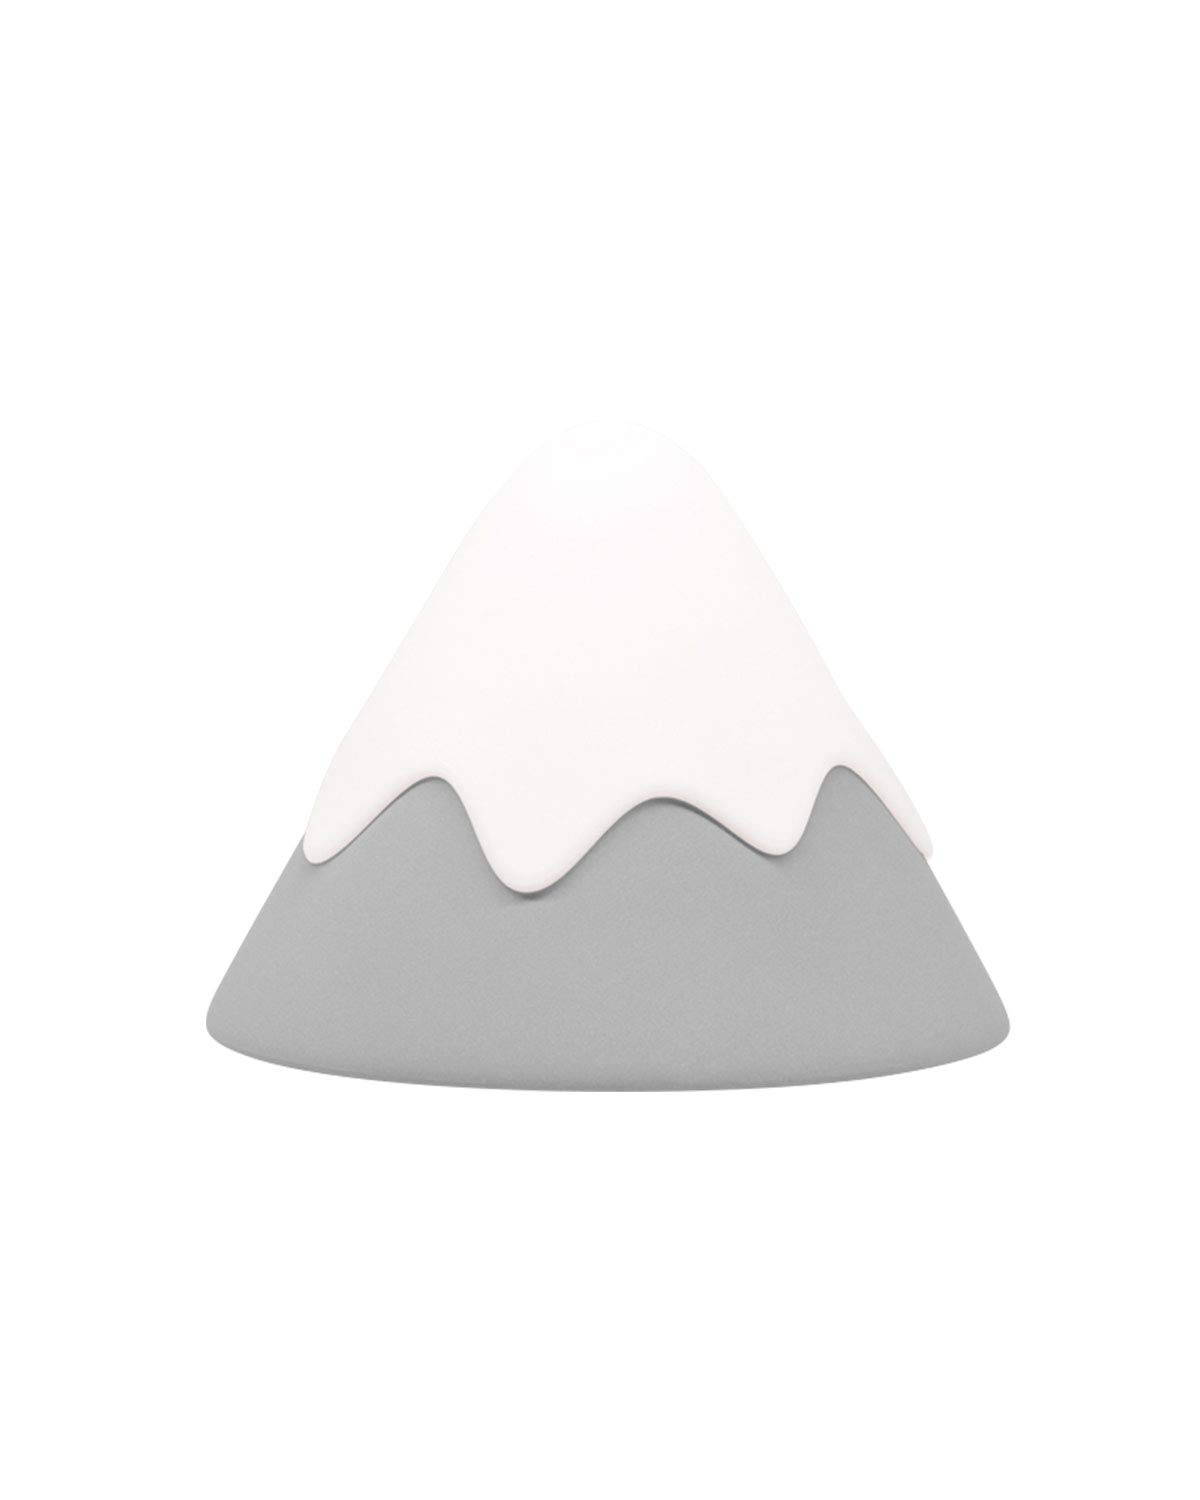 Night Light, DesignNest, Snow Mountain lamp, Tap Control&Timer Setting, Soft Silicone, Dimmable, Soft Eye Caring, Rechargeable, Portable, Nursery Lamp, Kids Safe (Grey)